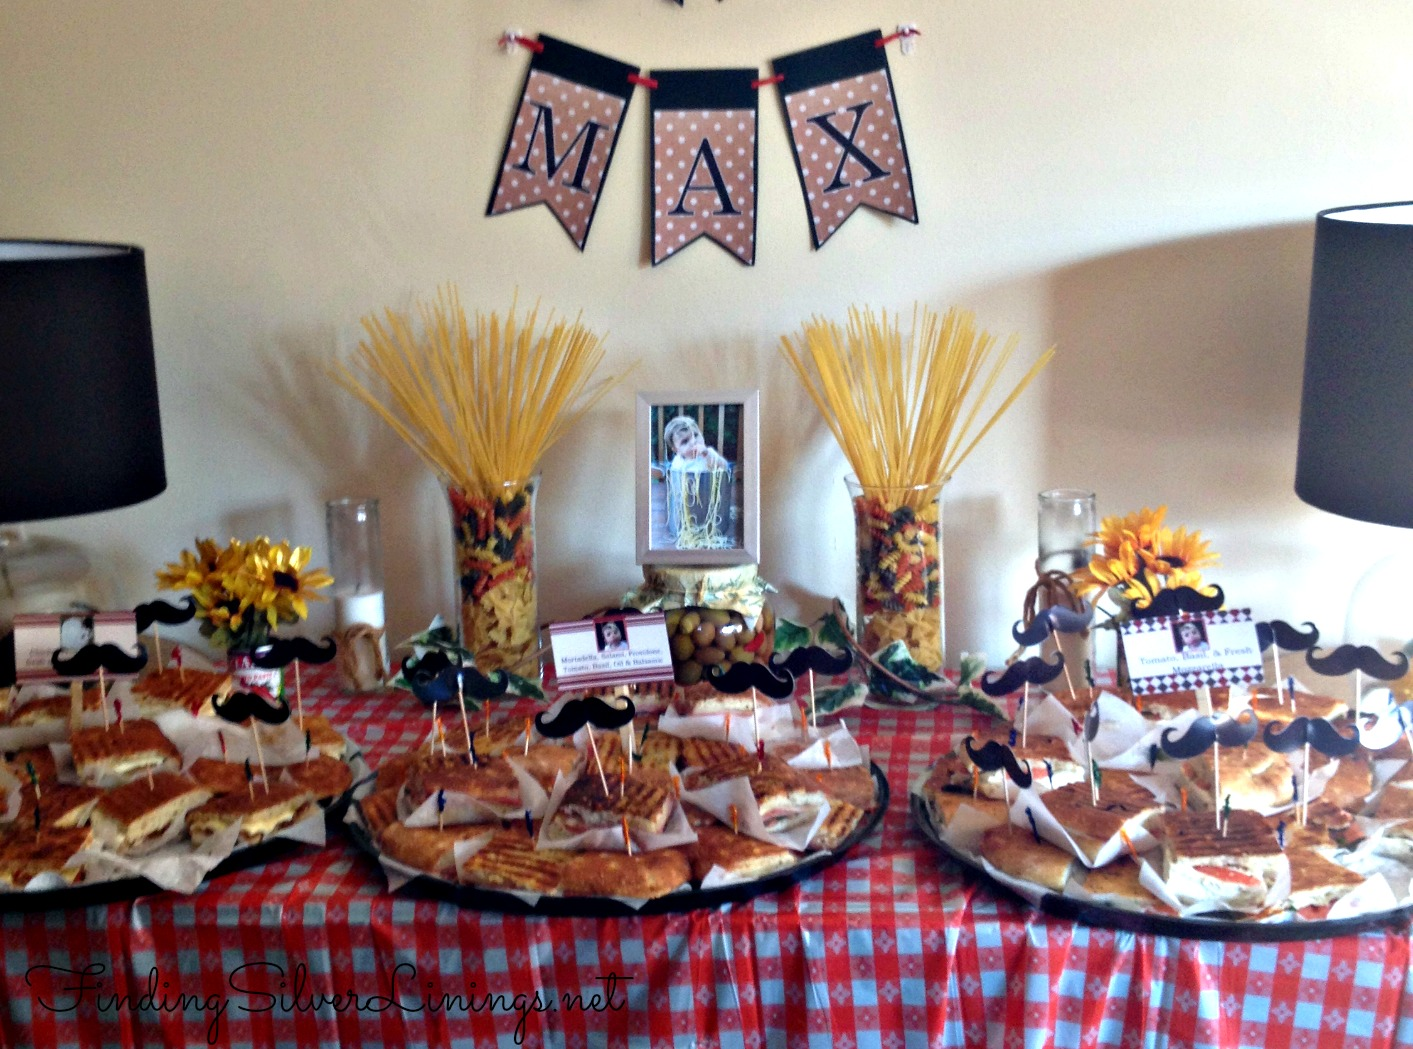 Max 39 s italian themed birthday party finding silver linings - Party decorations ideas ...